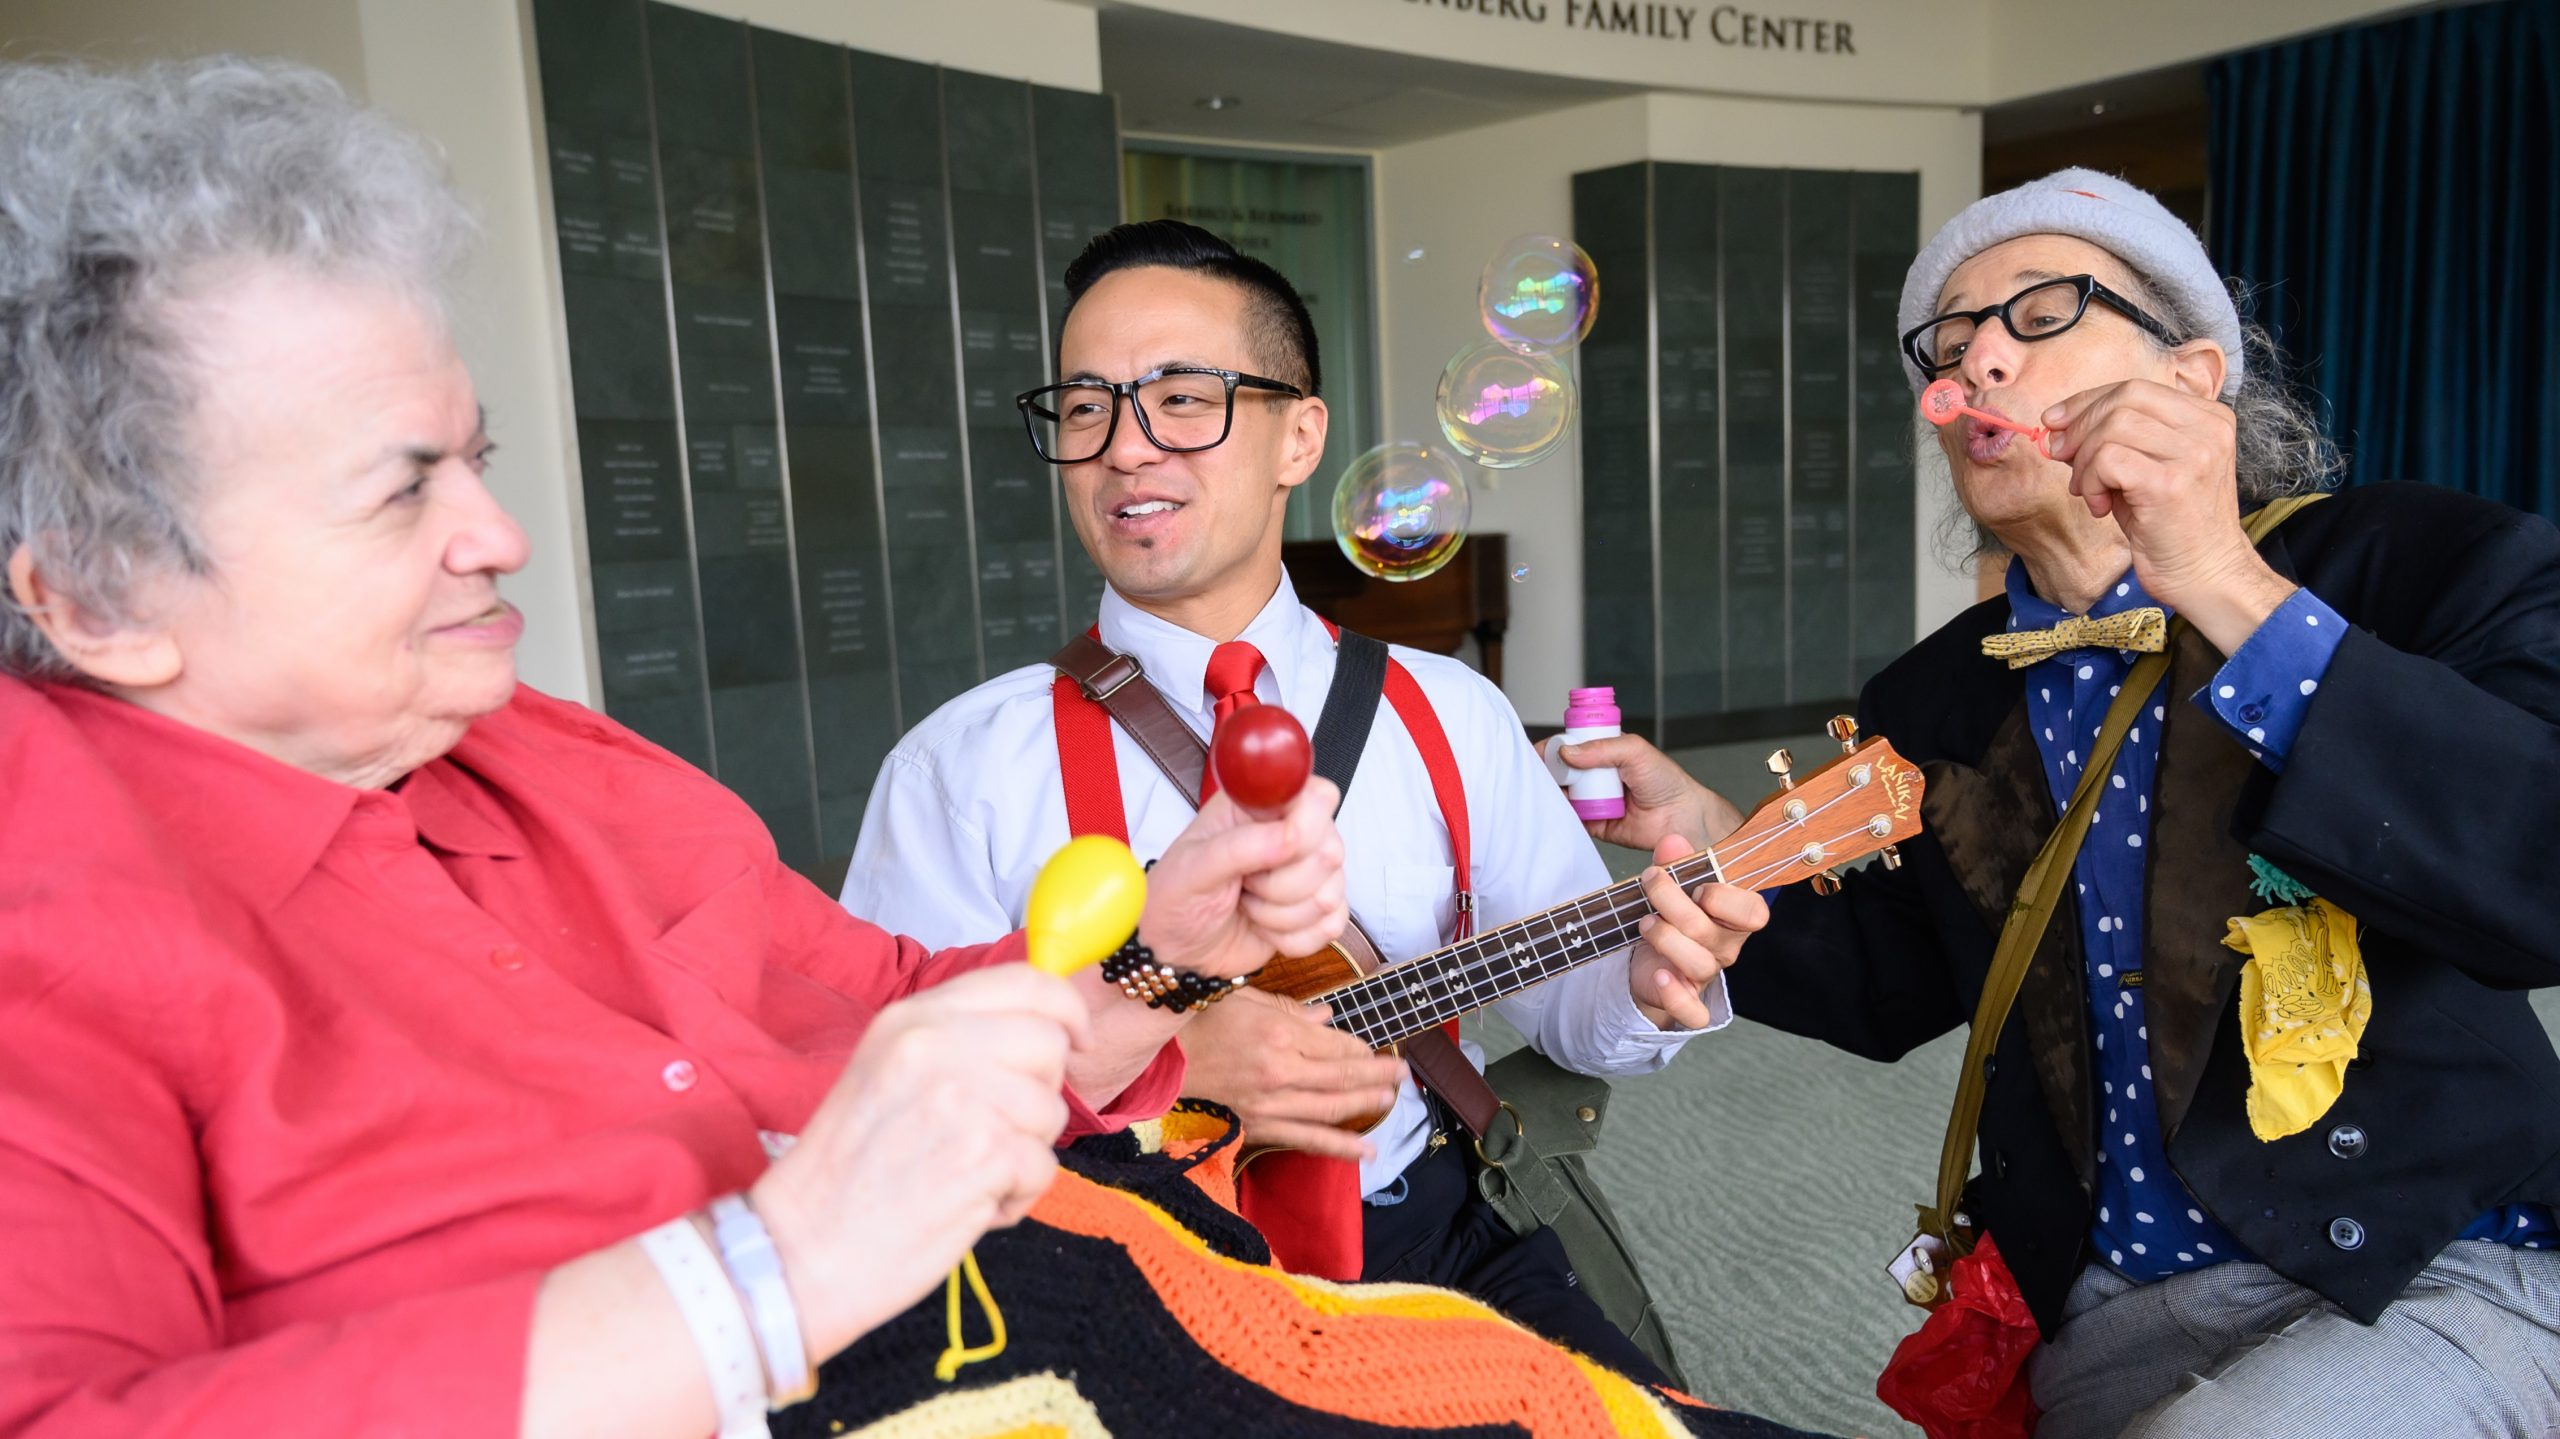 Image: Medical clowns playing music with a senior patient!